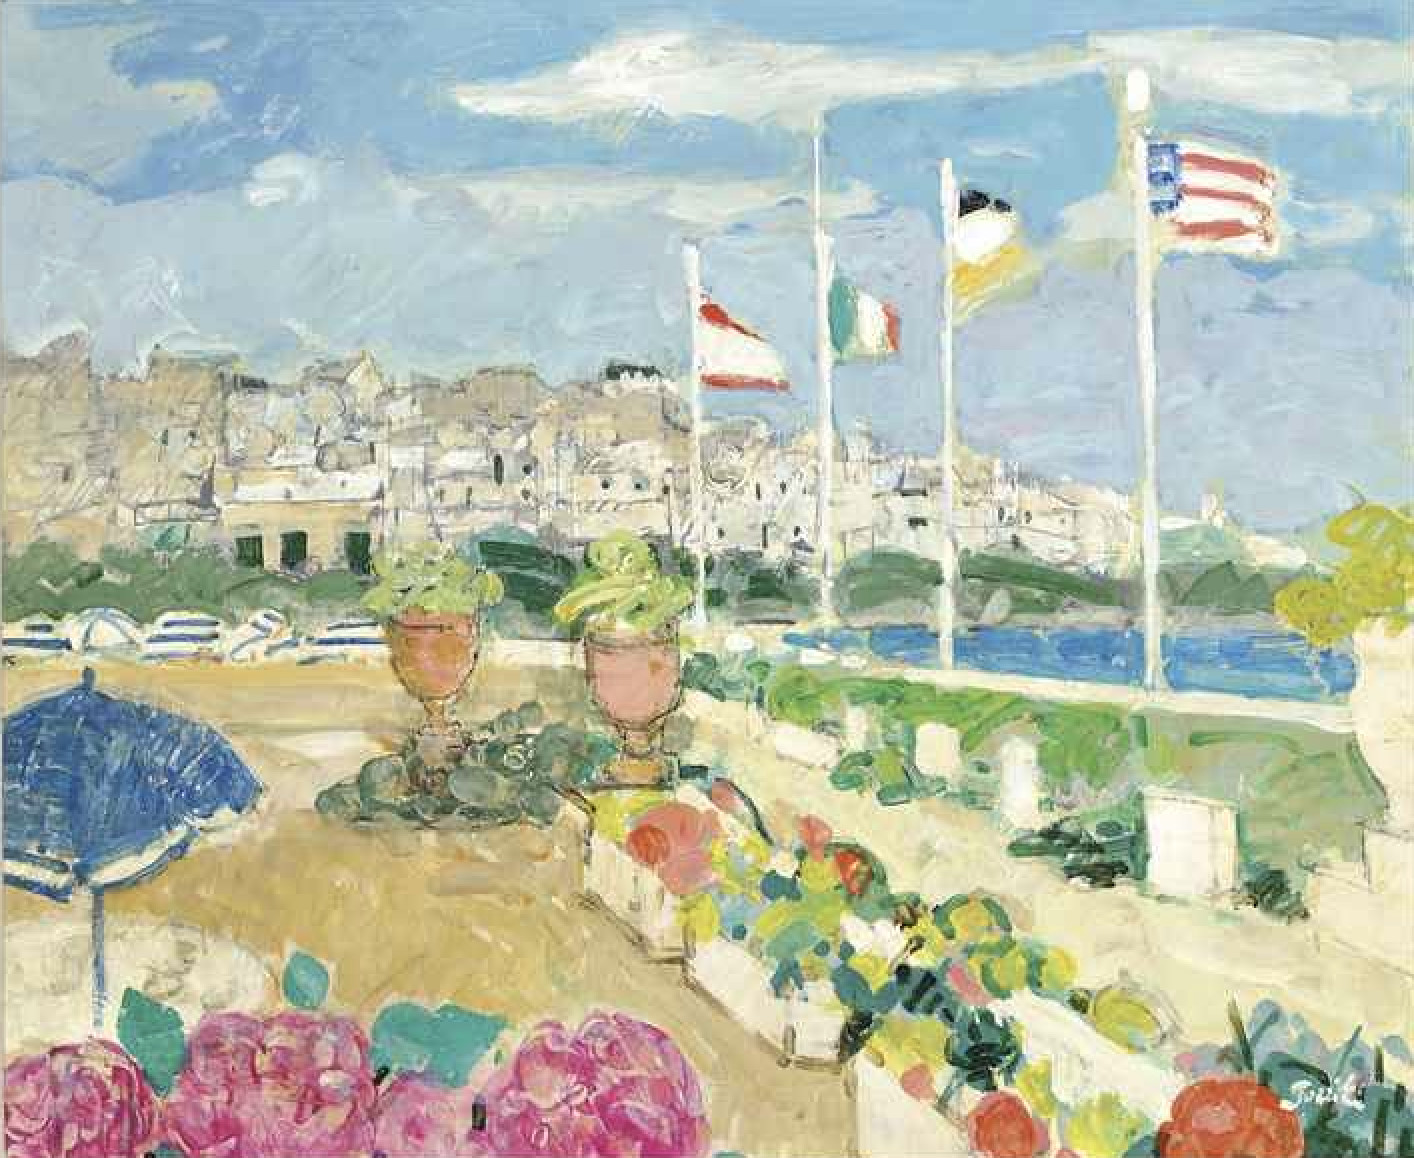 """<span class=""""link fancybox-details-link""""><a href=""""/artists/46-gilles-gorriti/works/271-gilles-gorriti-biarritz-signed-gorriti-signed-again-and-inscribed-biarritz-15f-gorriti/"""">View Detail Page</a></span><div class=""""artist""""><strong>Gilles Gorriti</strong></div> 1939 <div class=""""title""""><em>Biarritz signed Gorriti signed again and inscribed """"BiARRITZ/15F/Gorriti</em></div> <div class=""""medium"""">Oil on Canvas</div> <div class=""""dimensions"""">70 x 82 cm framed</div><div class=""""price"""">£2,200.00</div>"""